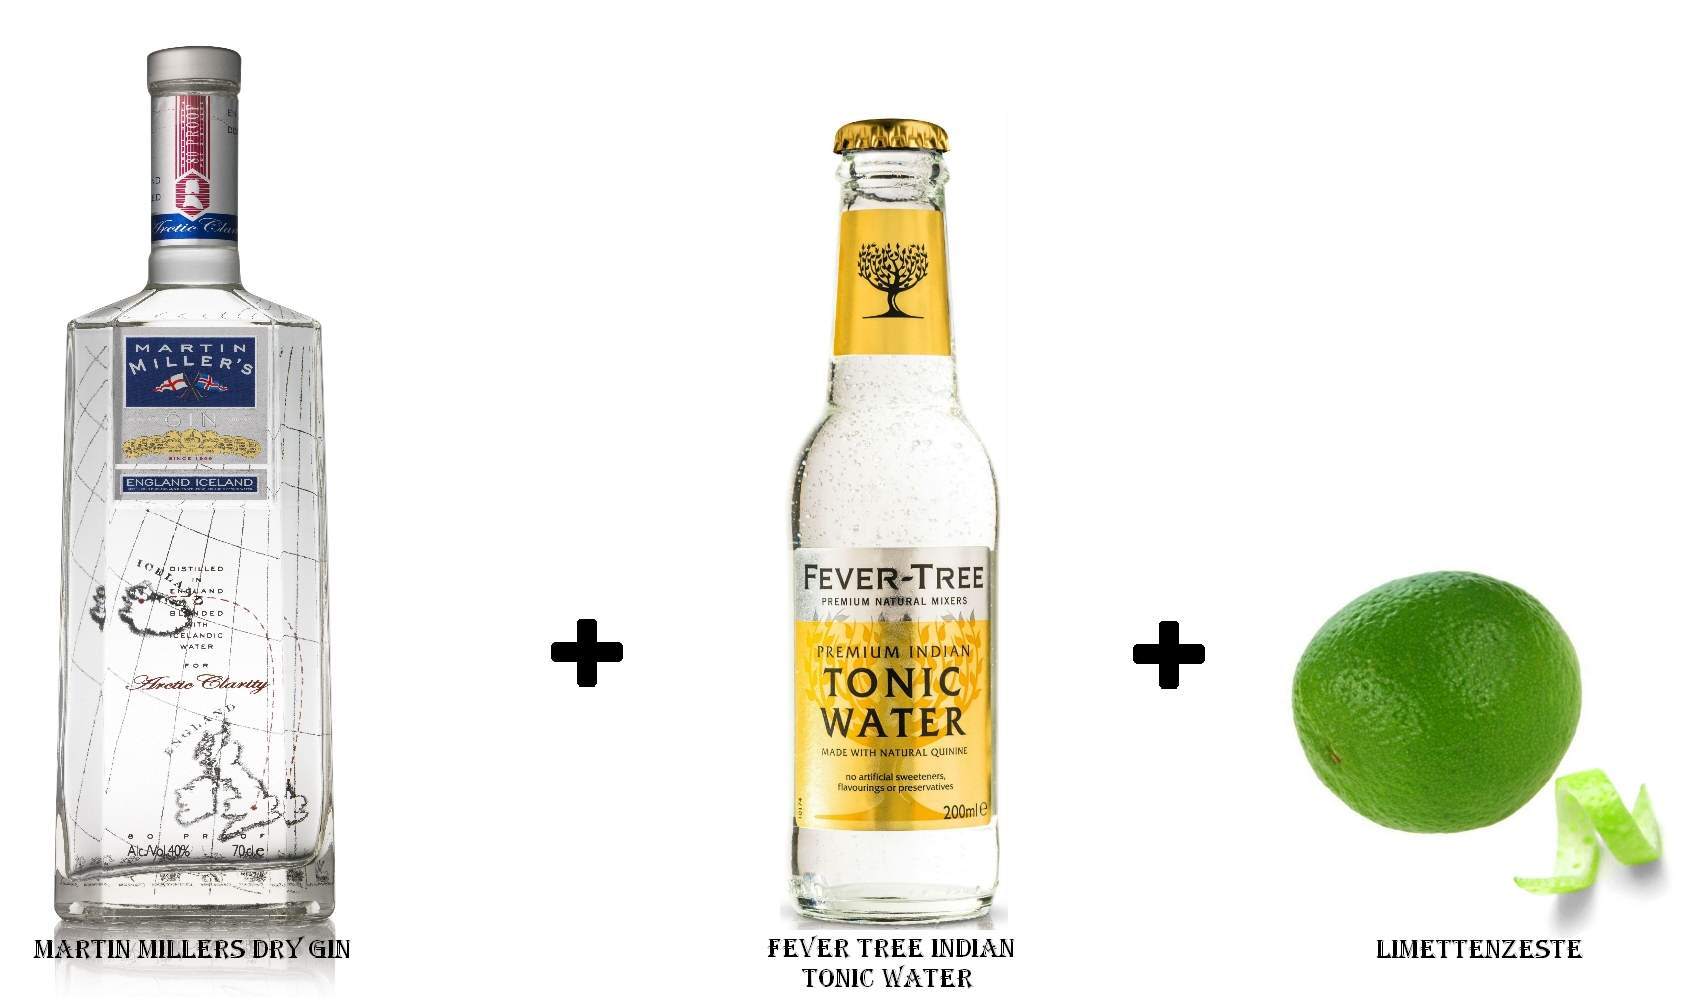 Martin Millers Dry Gin + Fever Tree Indian Tonic Water + Limettenzeste